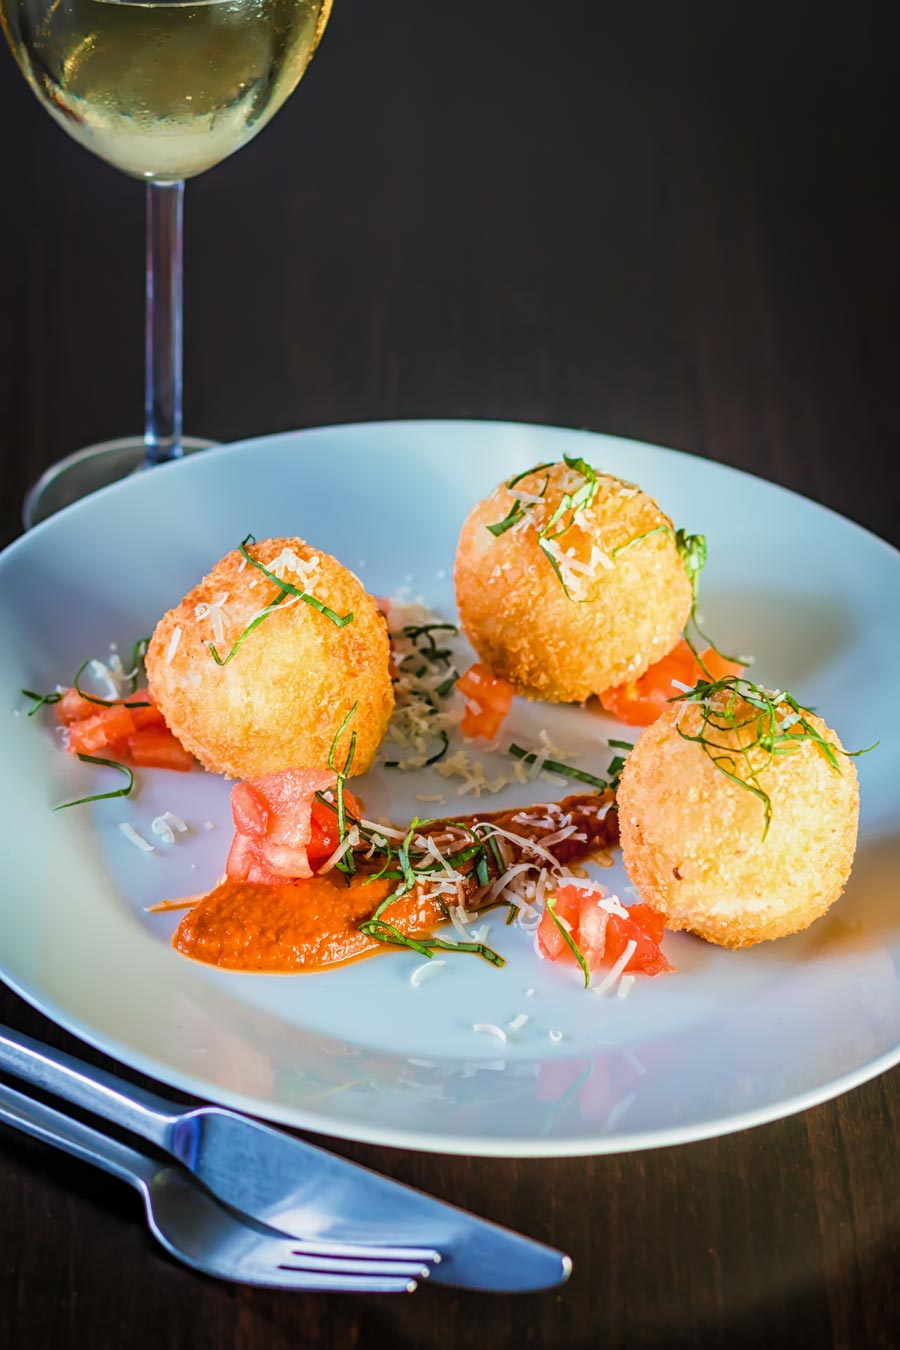 The Italians are responsible for some of the most wonderful comfort food ever devised and this Mozzarella Cheese stuffed Arancini recipe is a testament to that.